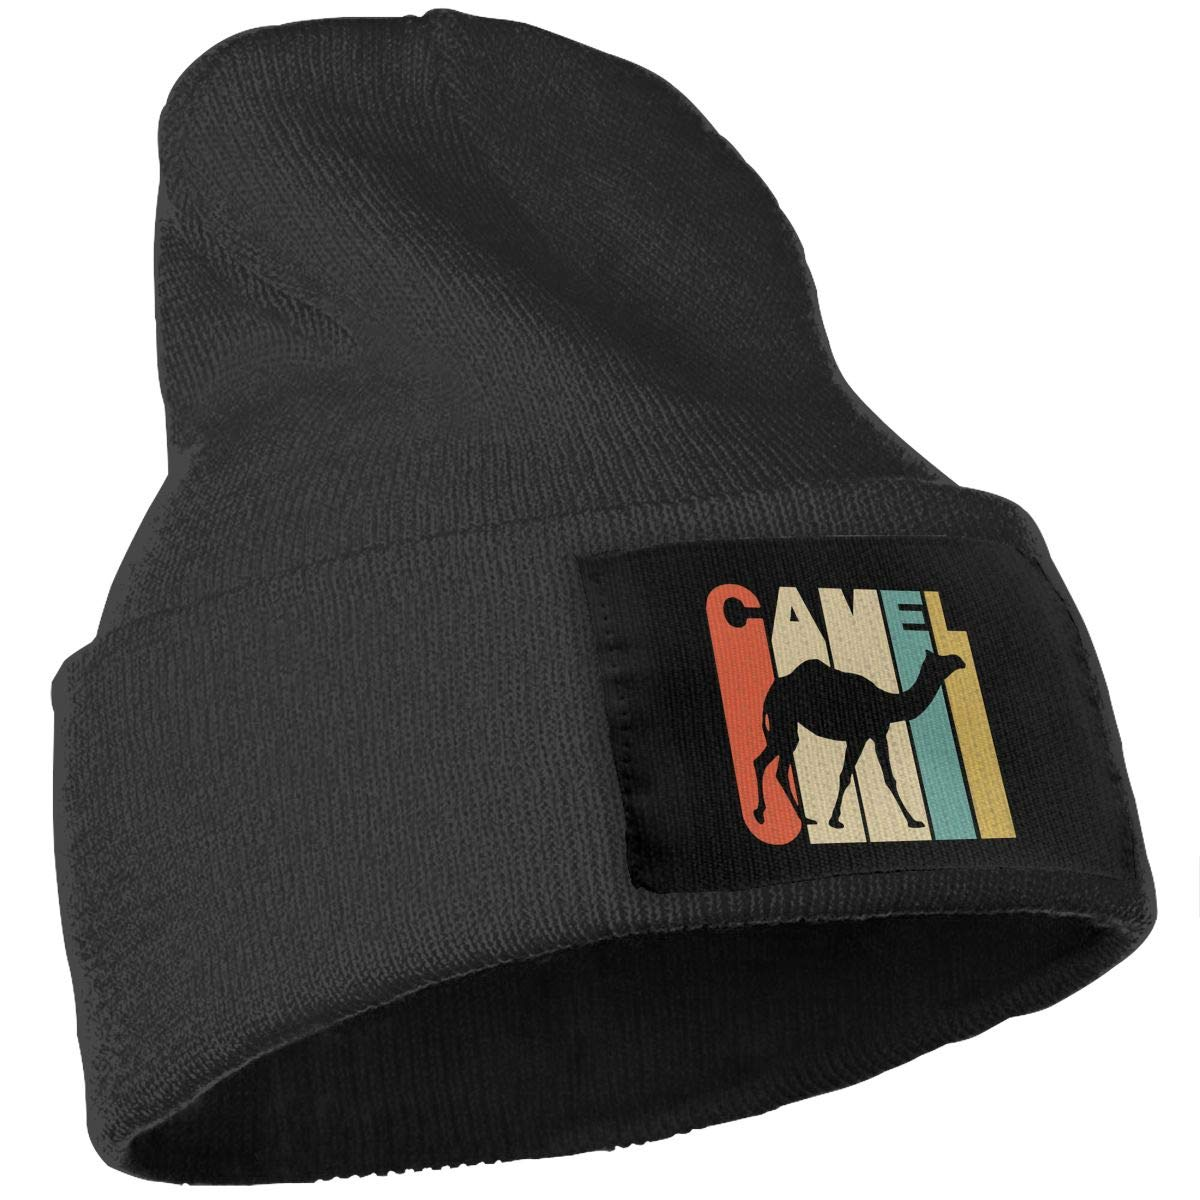 Unisex Vintage Style Camel Outdoor Stretch Knit Beanies Hat Soft Winter Skull Caps